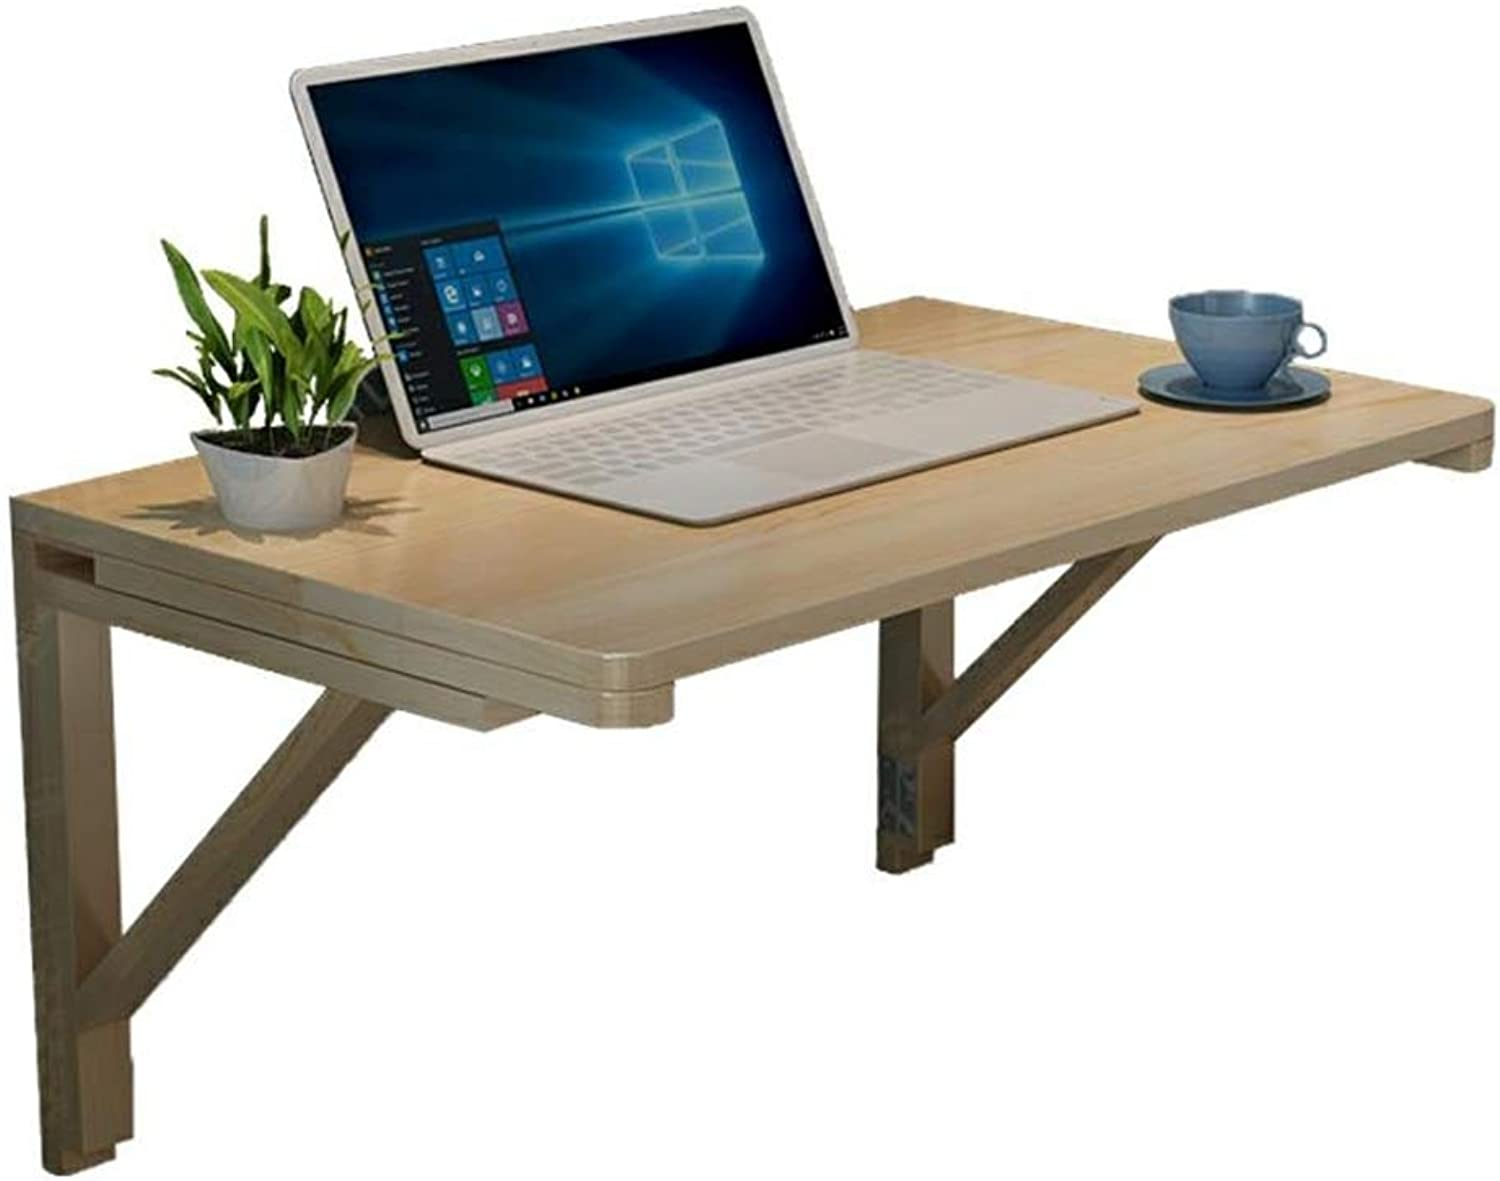 Folding Wall Desk-Solid Wood Table Wall-Mounted Desk Dining Table Computer Table Folding Table 100  40 (Size   60  40cm)